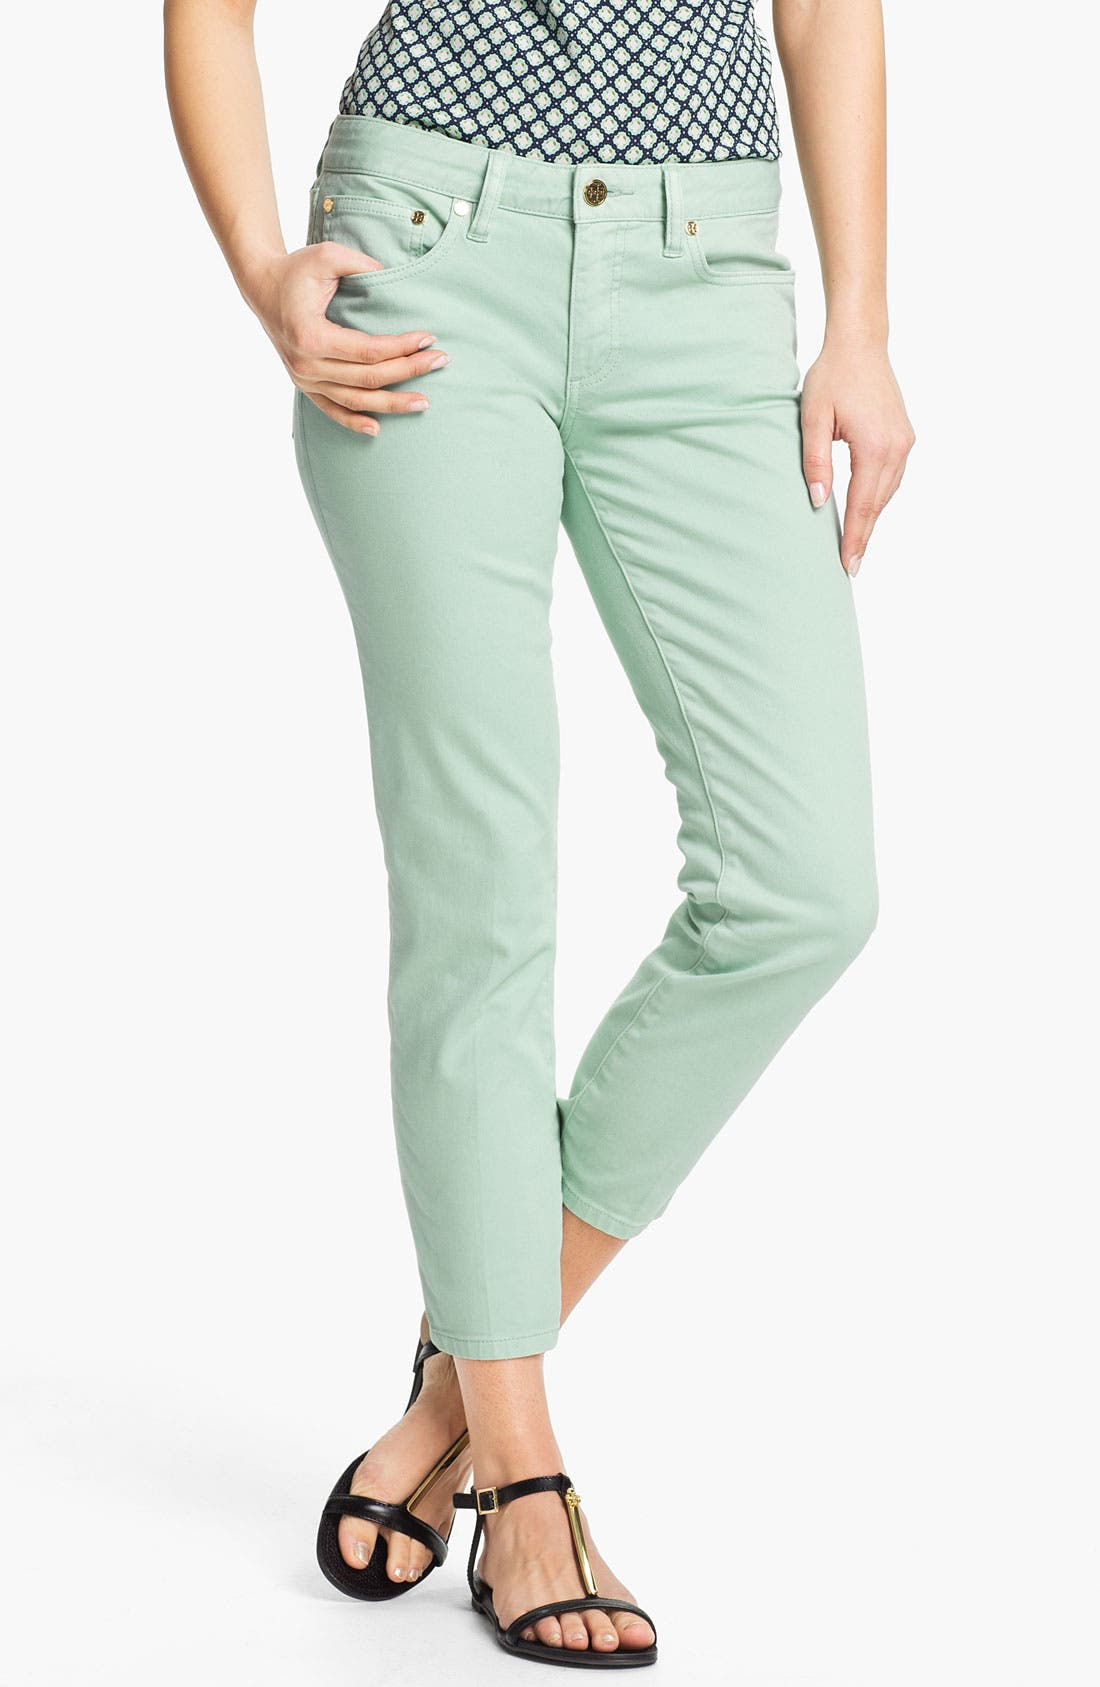 Alternate Image 1 Selected - Tory Burch 'Alexa' Crop Skinny Stretch Jeans (Seaglass)